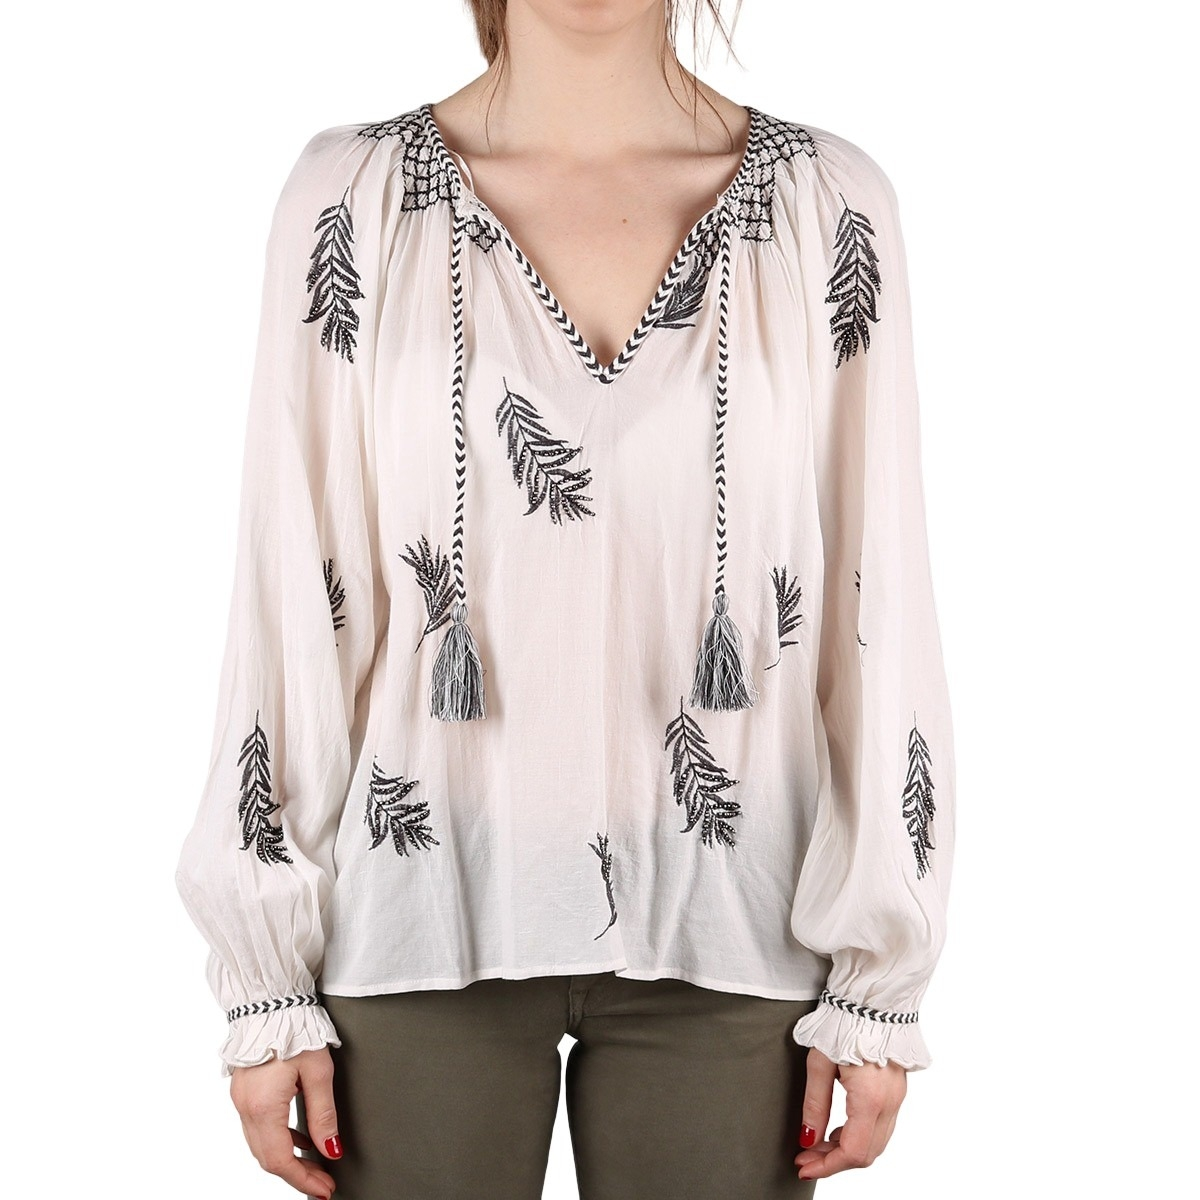 Pepe Jeans Blusa Lisa Champagne Plumas Mujer